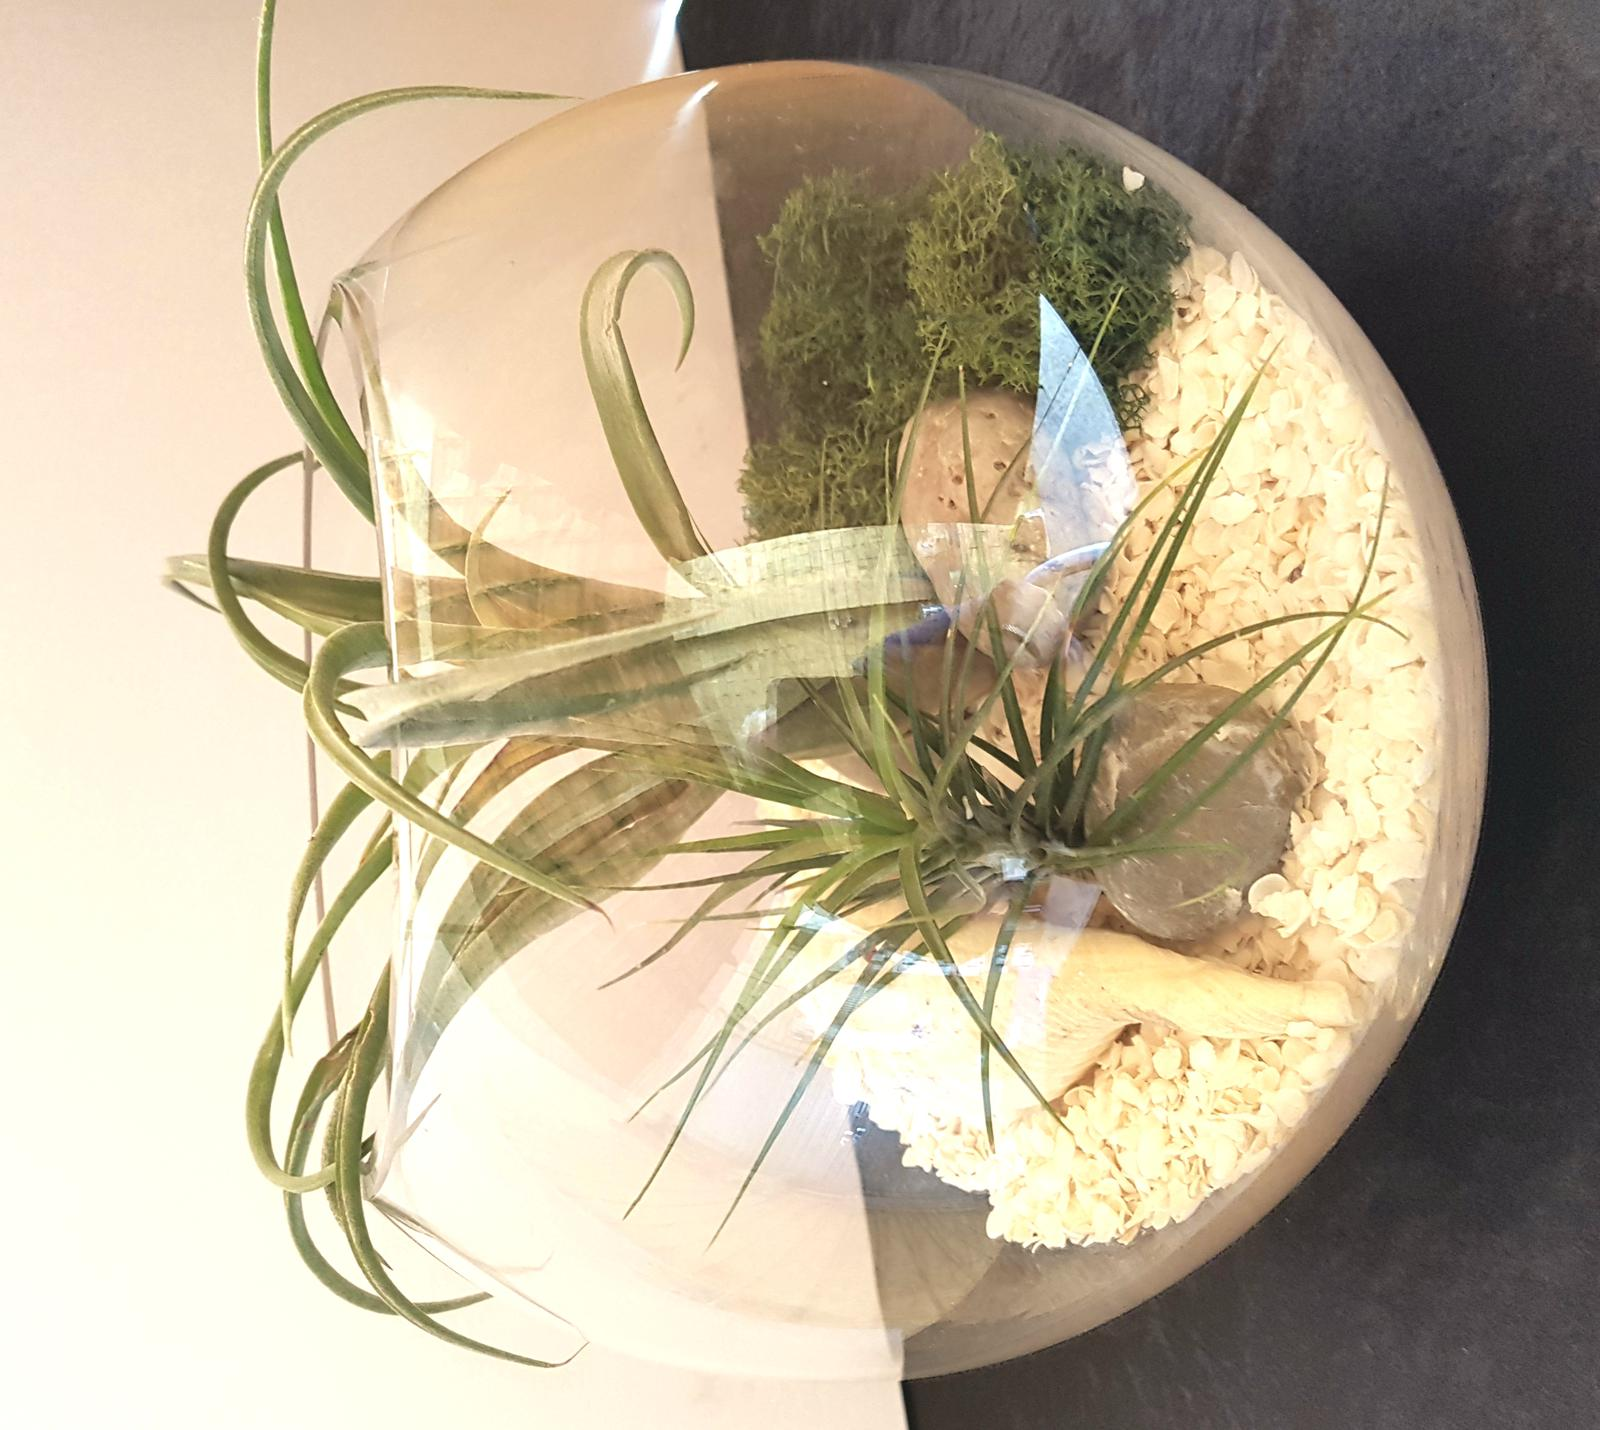 Air plants in terrarium